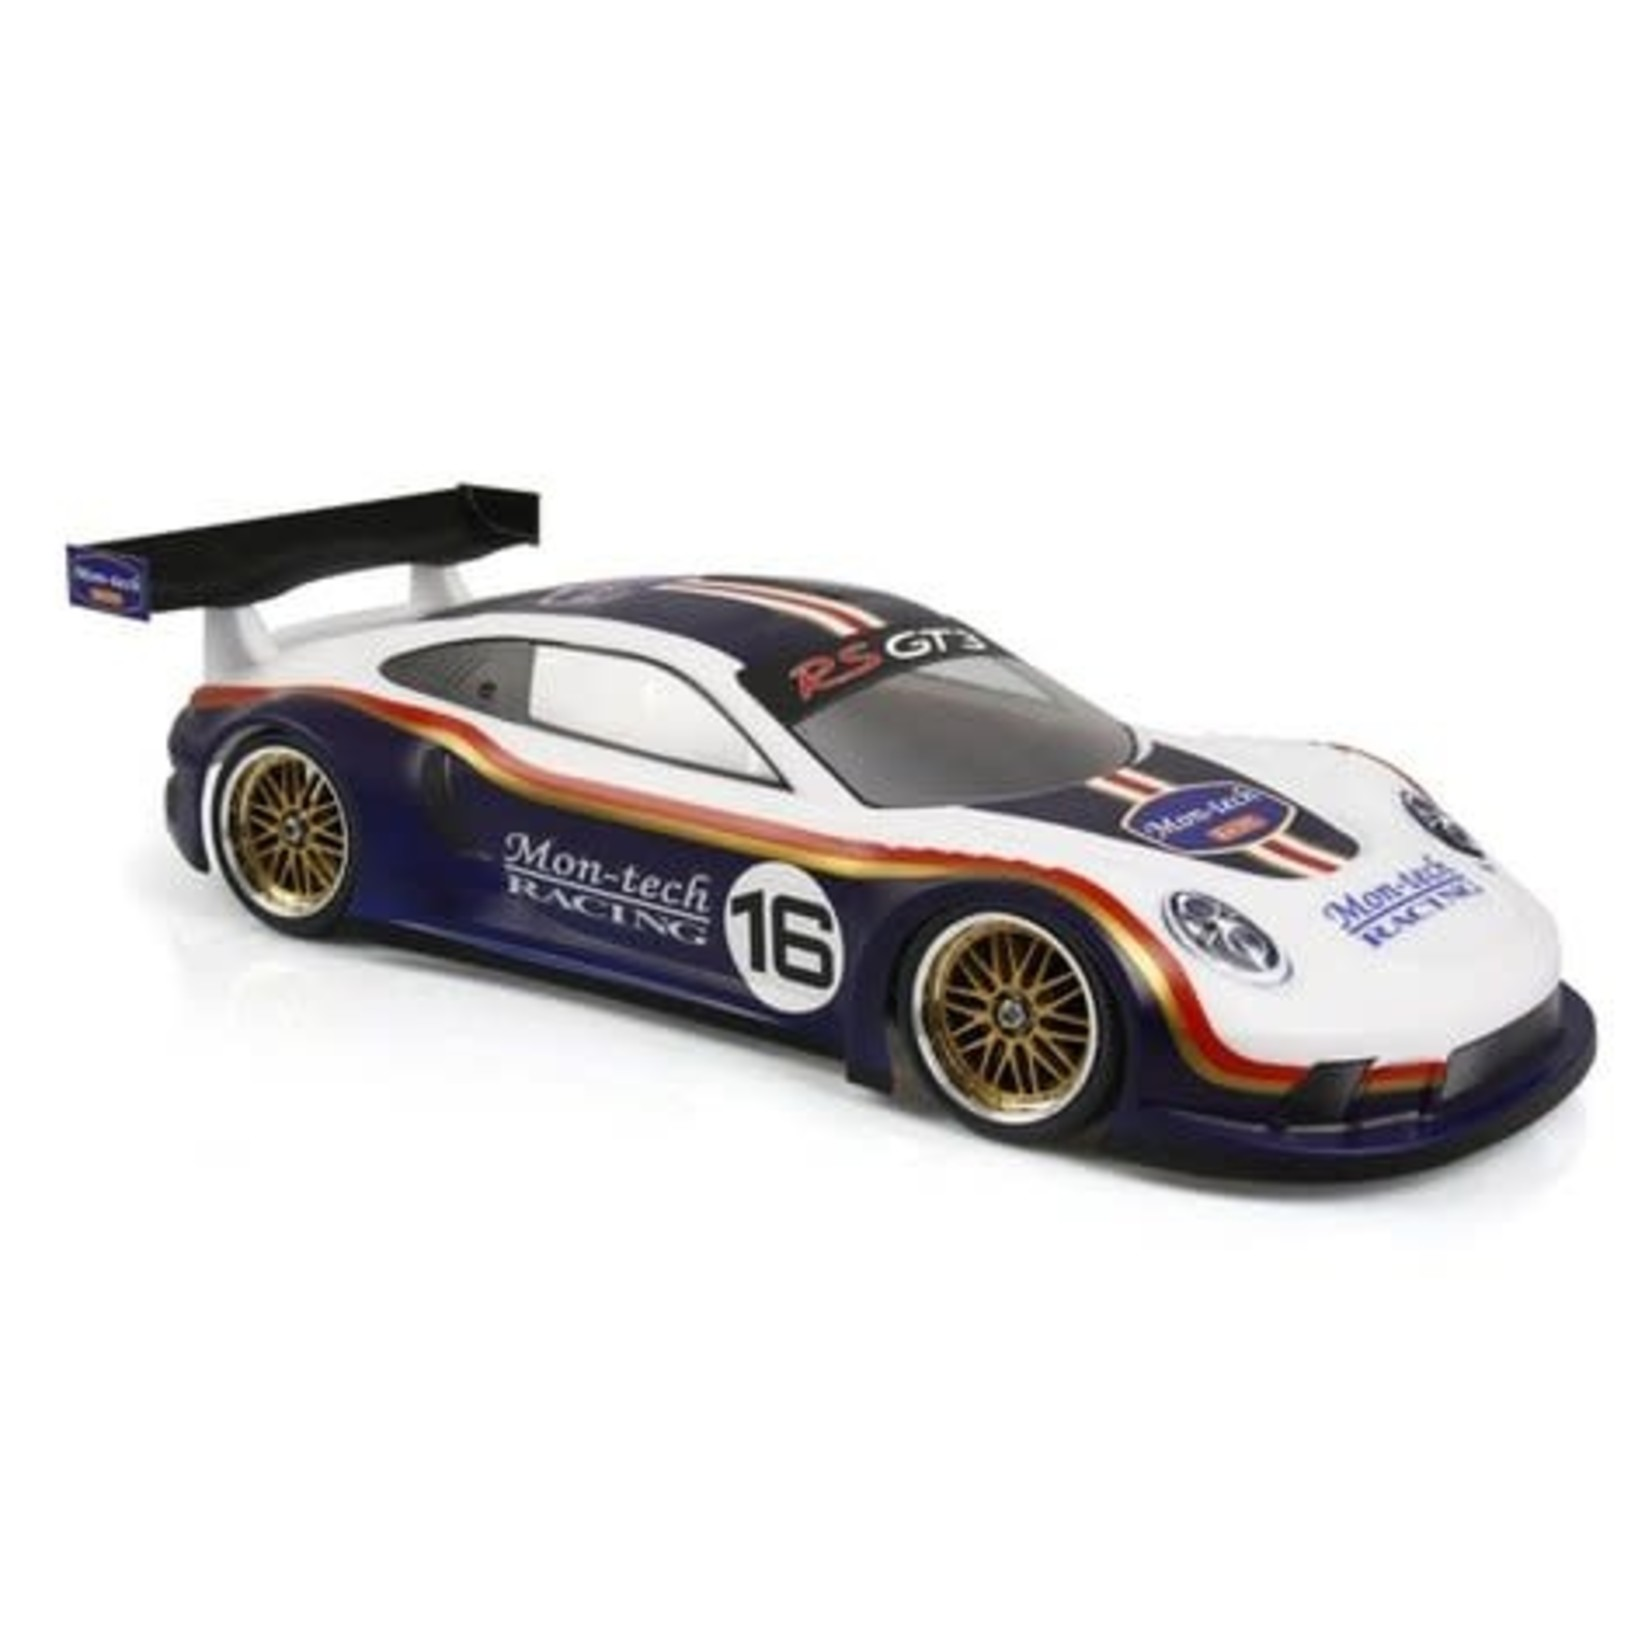 Montech 1/10th RS GT3 USGT Body  Comes unpainted with window masks and Mon-Tech sticker sheet